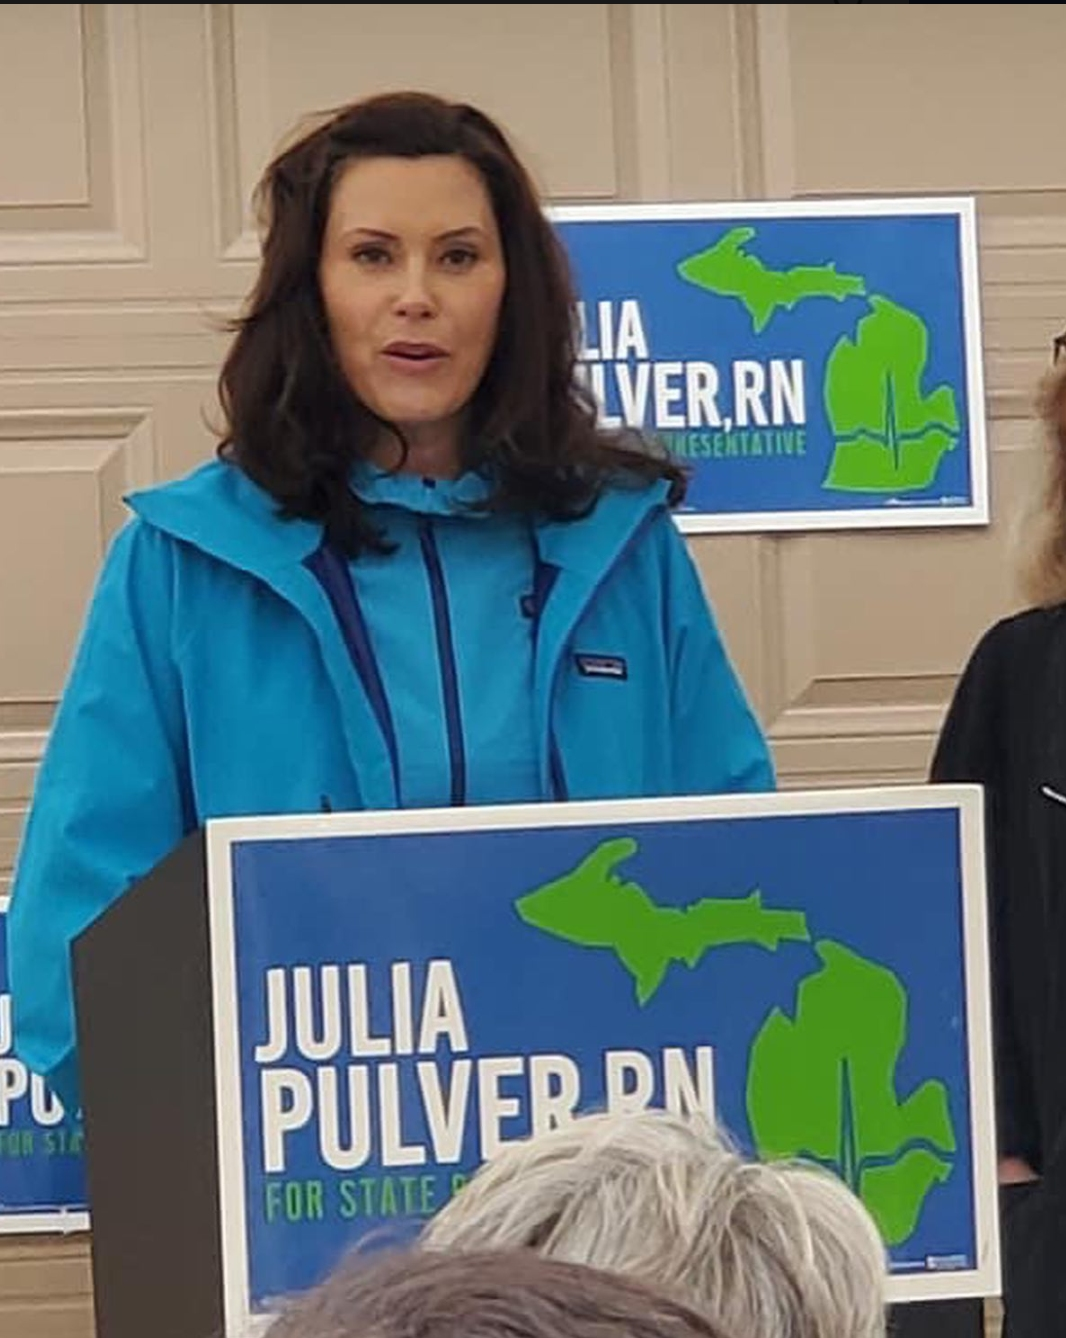 Whitmer for Pulver